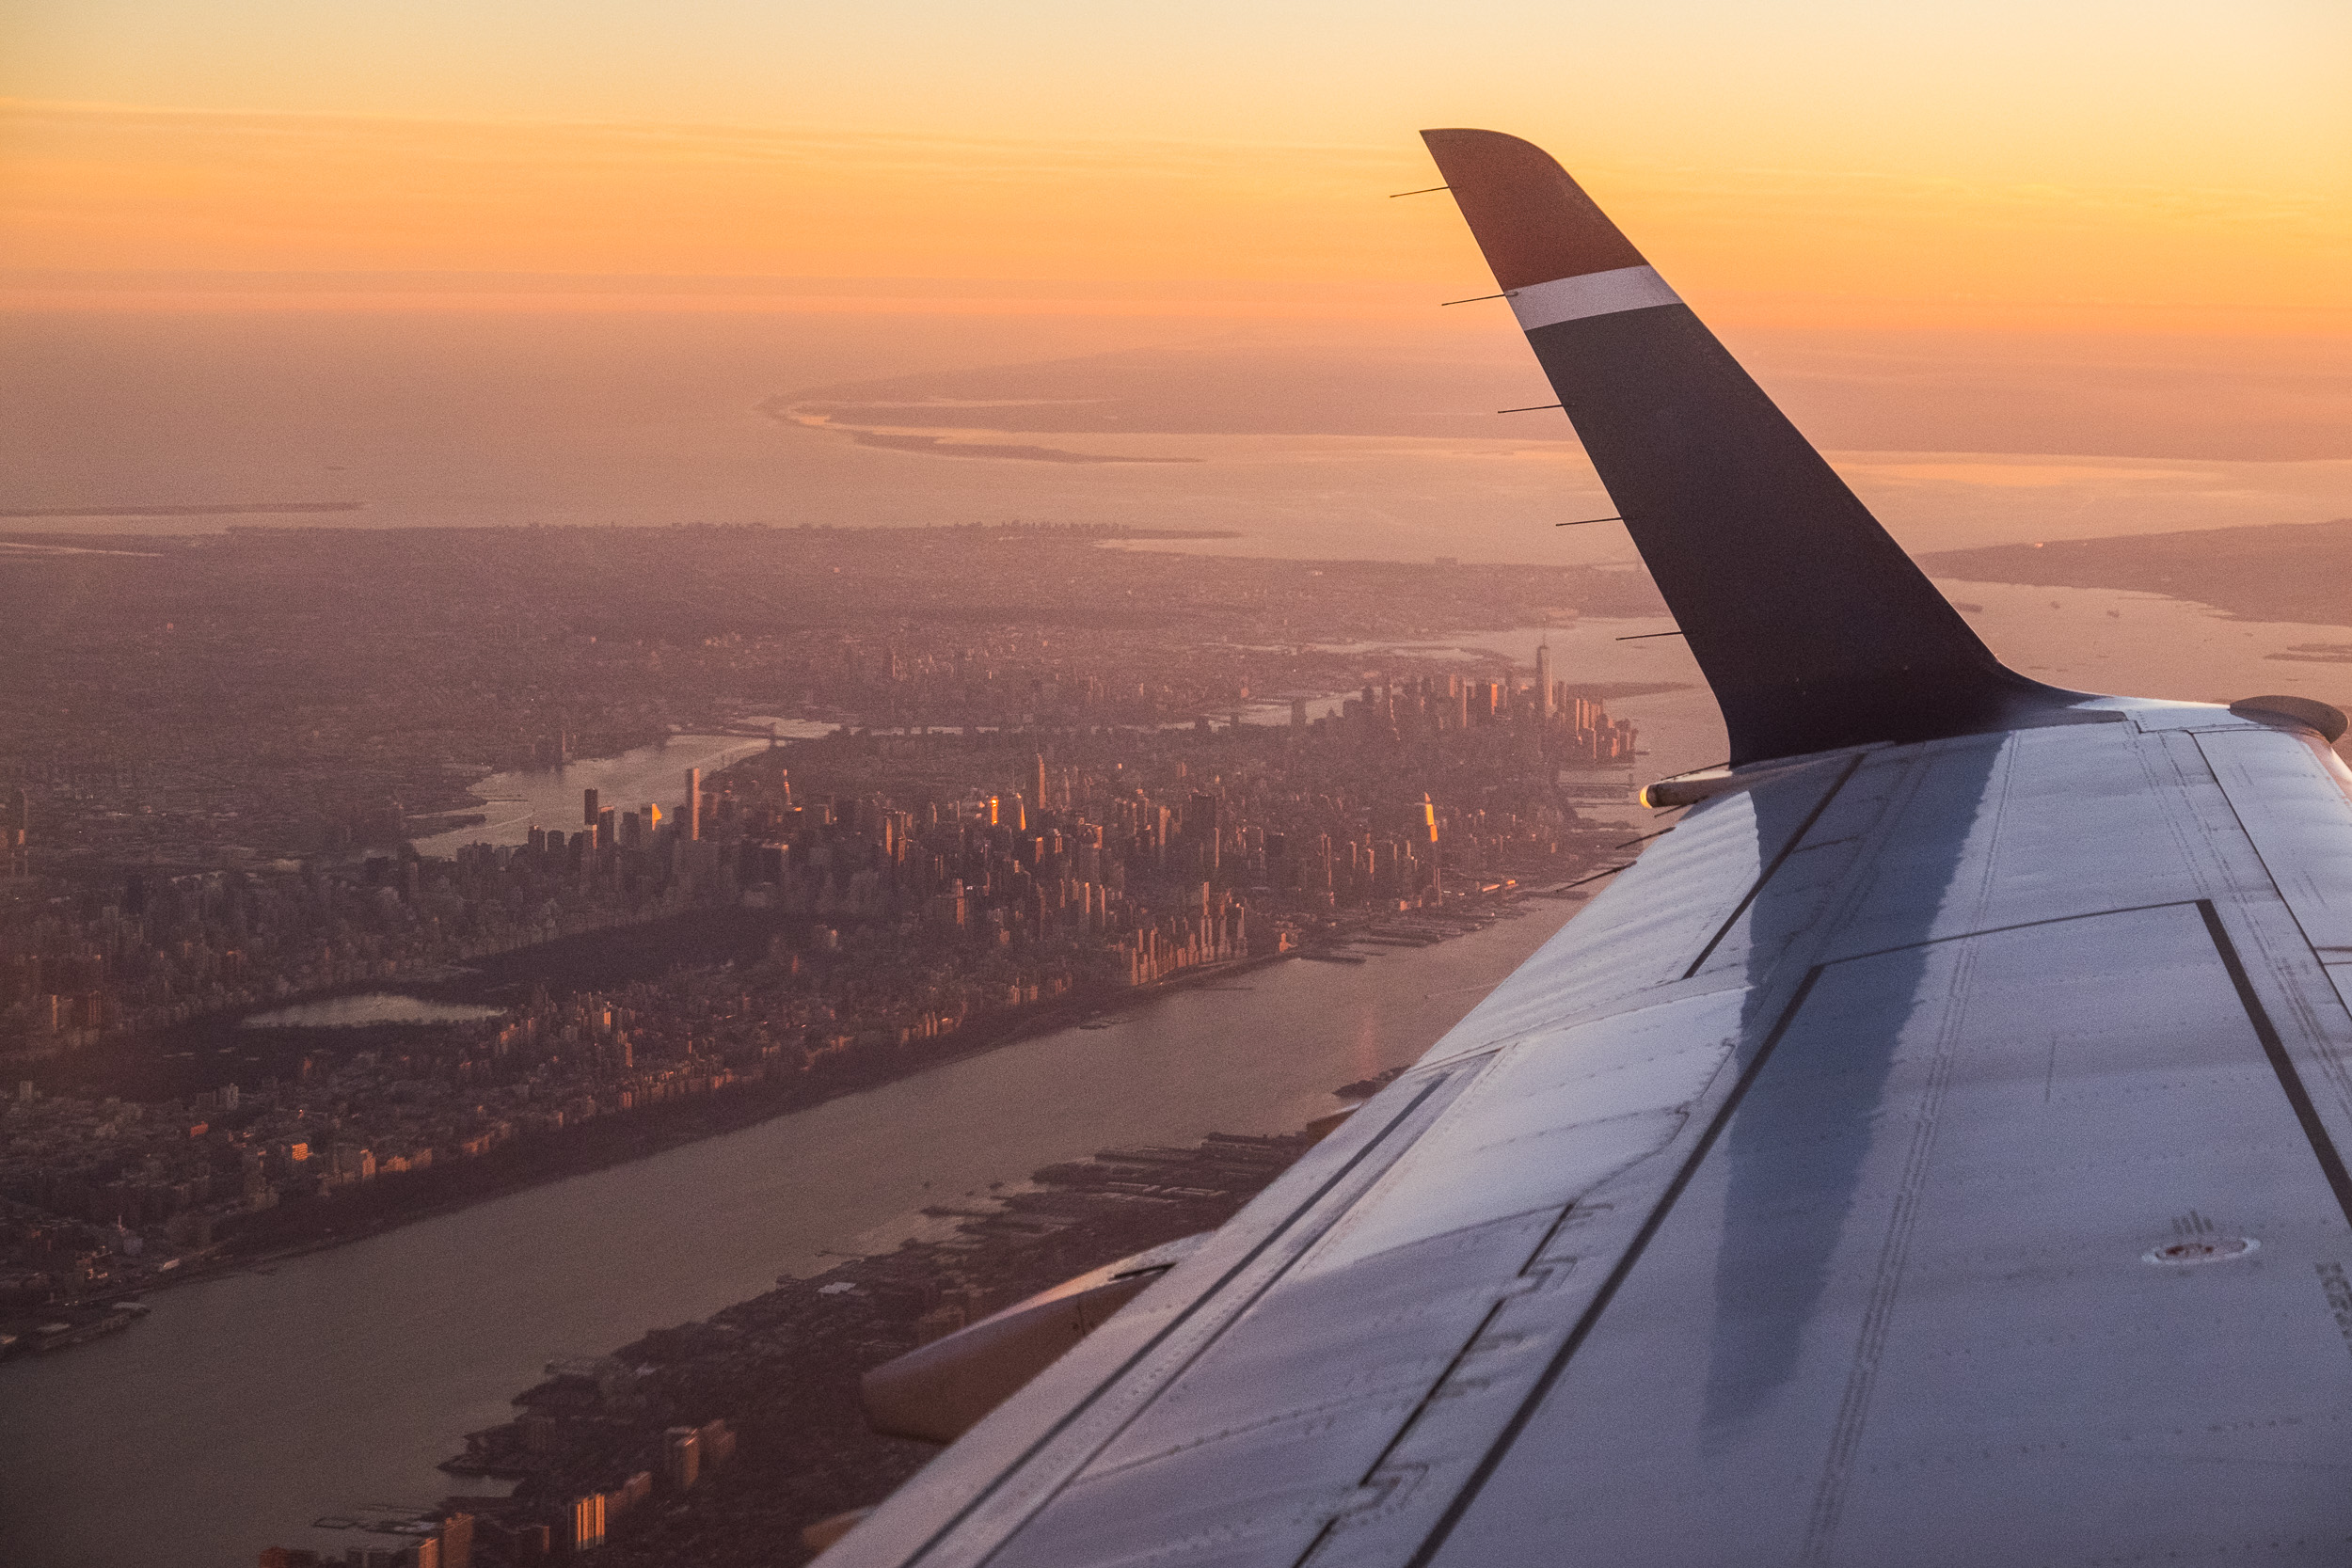 Flying home from NYC